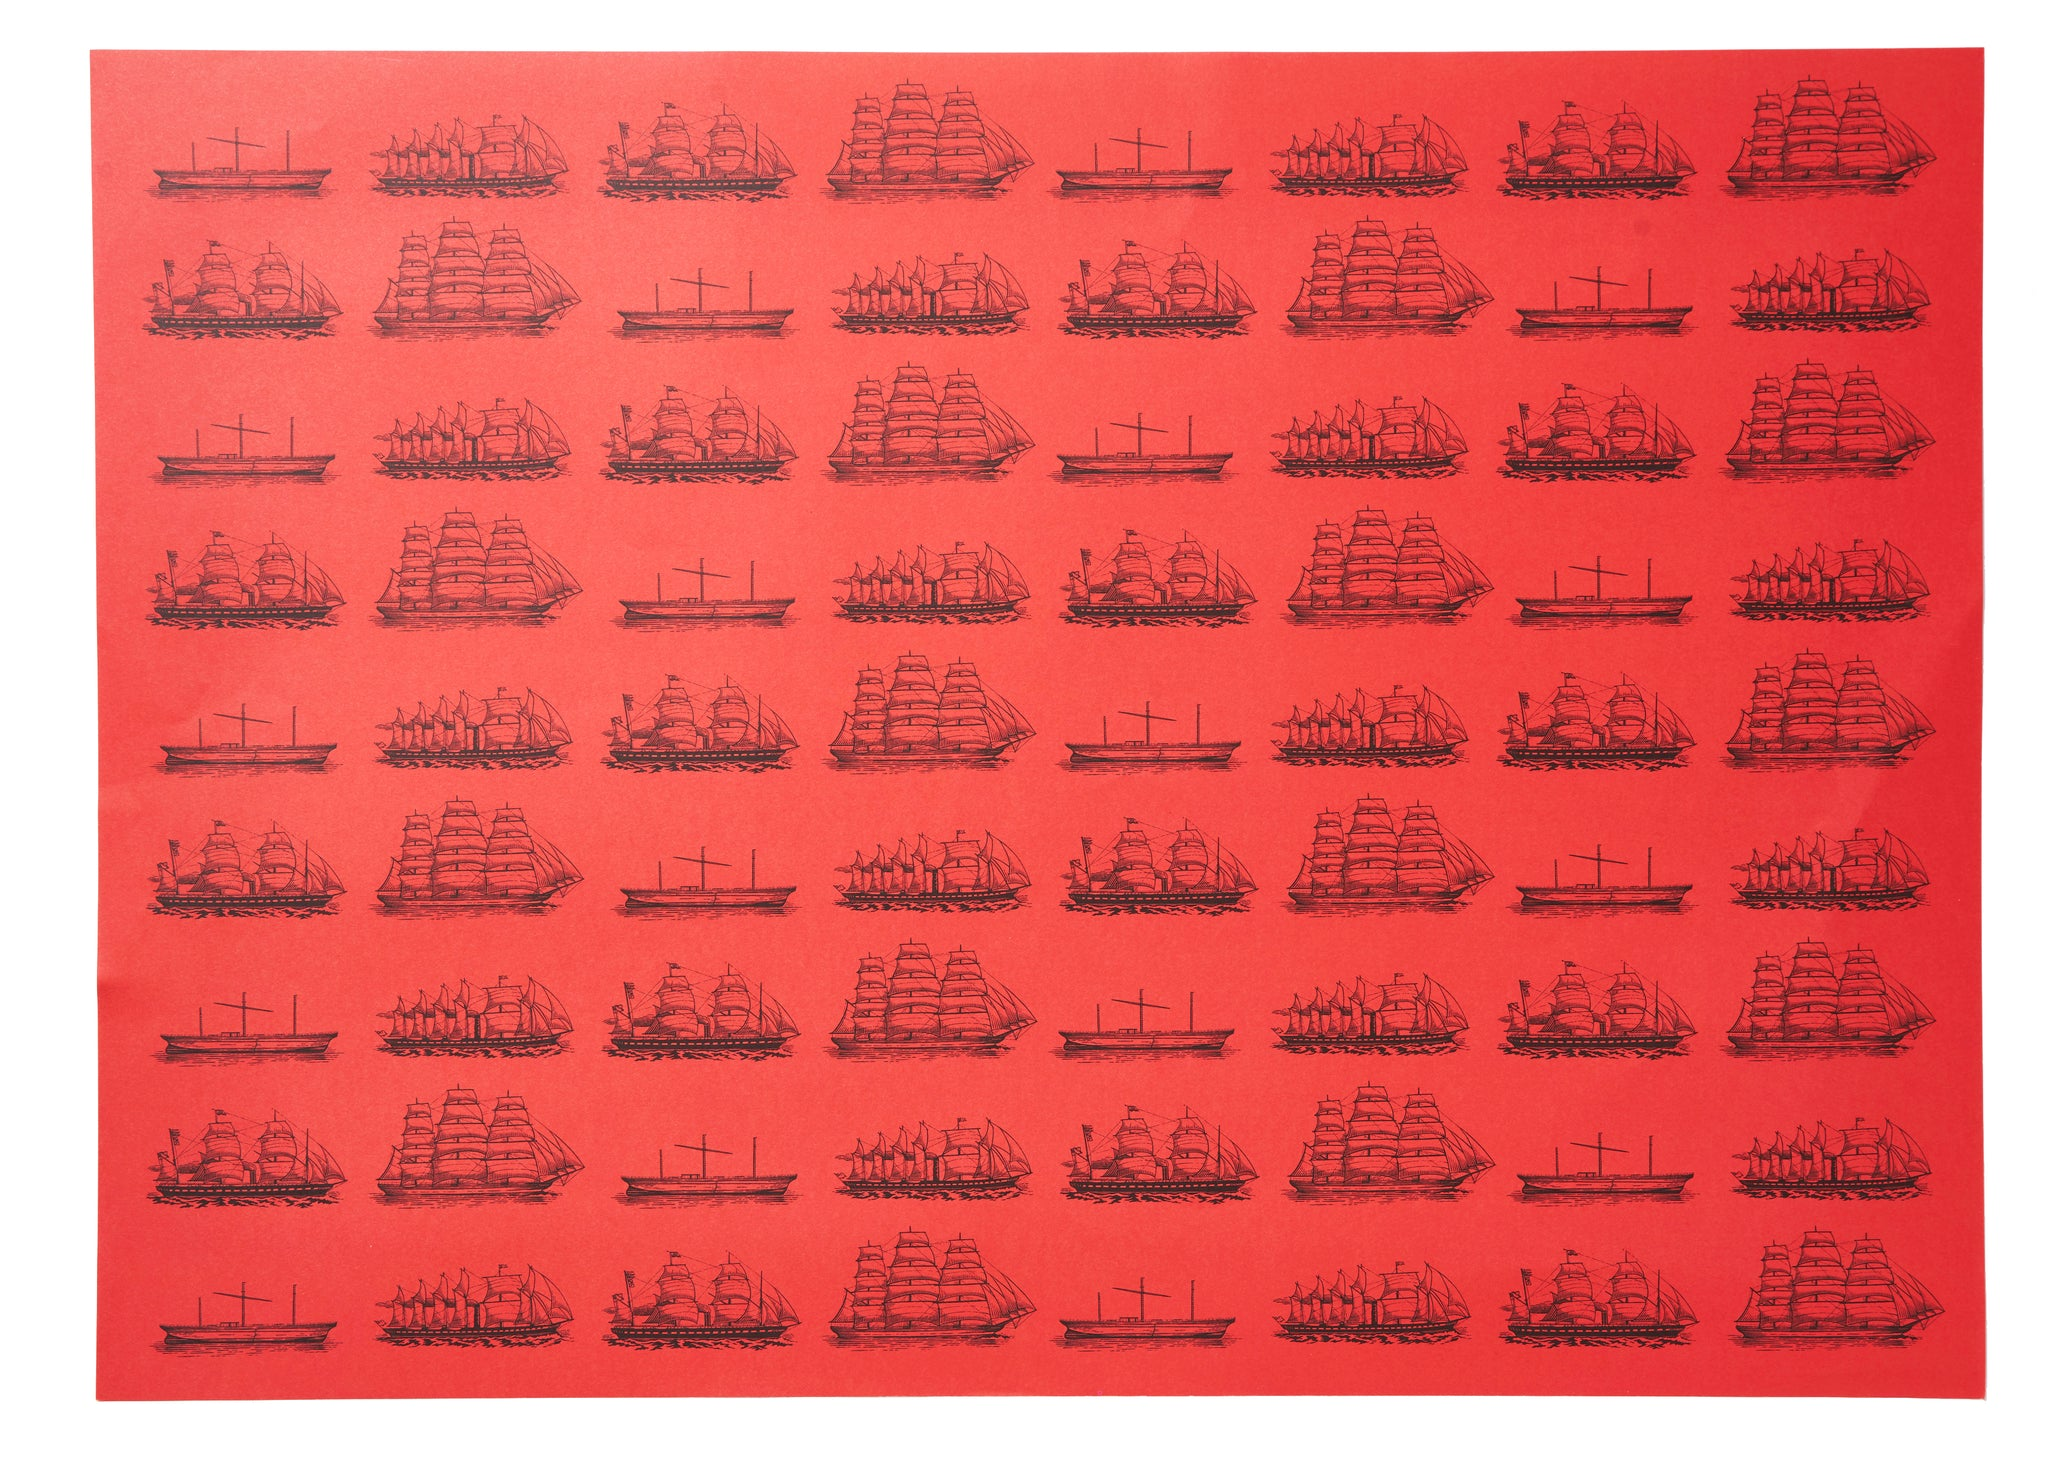 SS Great Britain Configuration Wrapping Paper